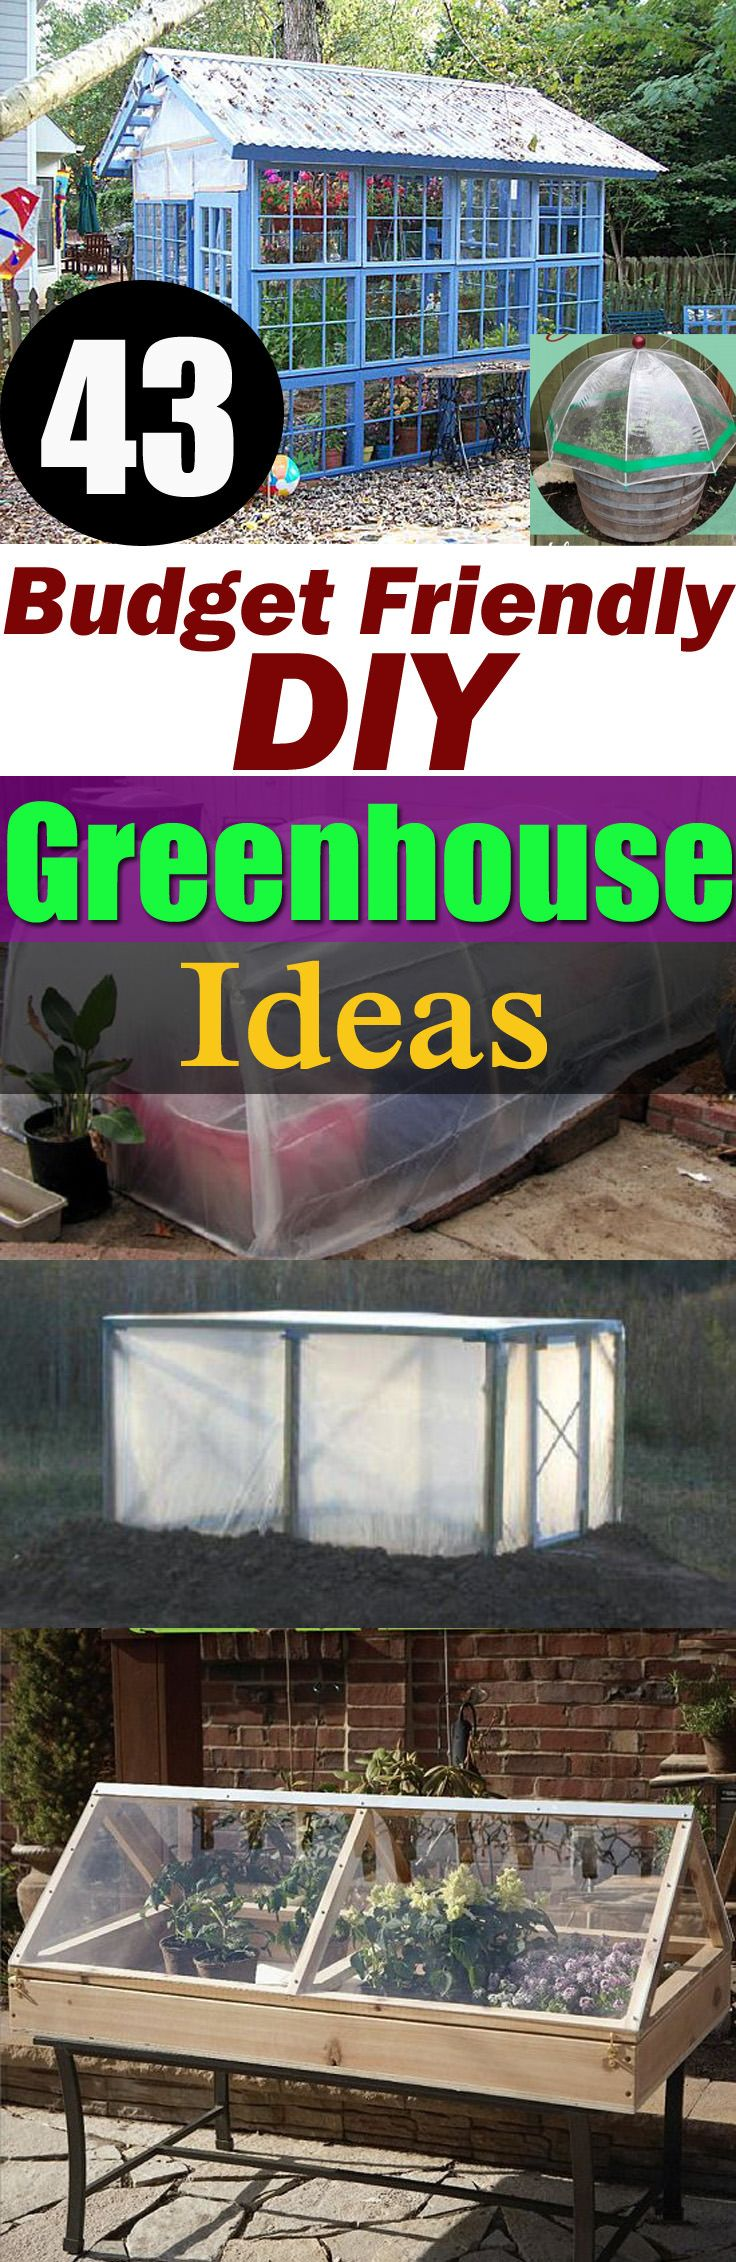 Take a look at some of the best Budget-Friendly DIY Greenhouse Ideas for both the small and large space!